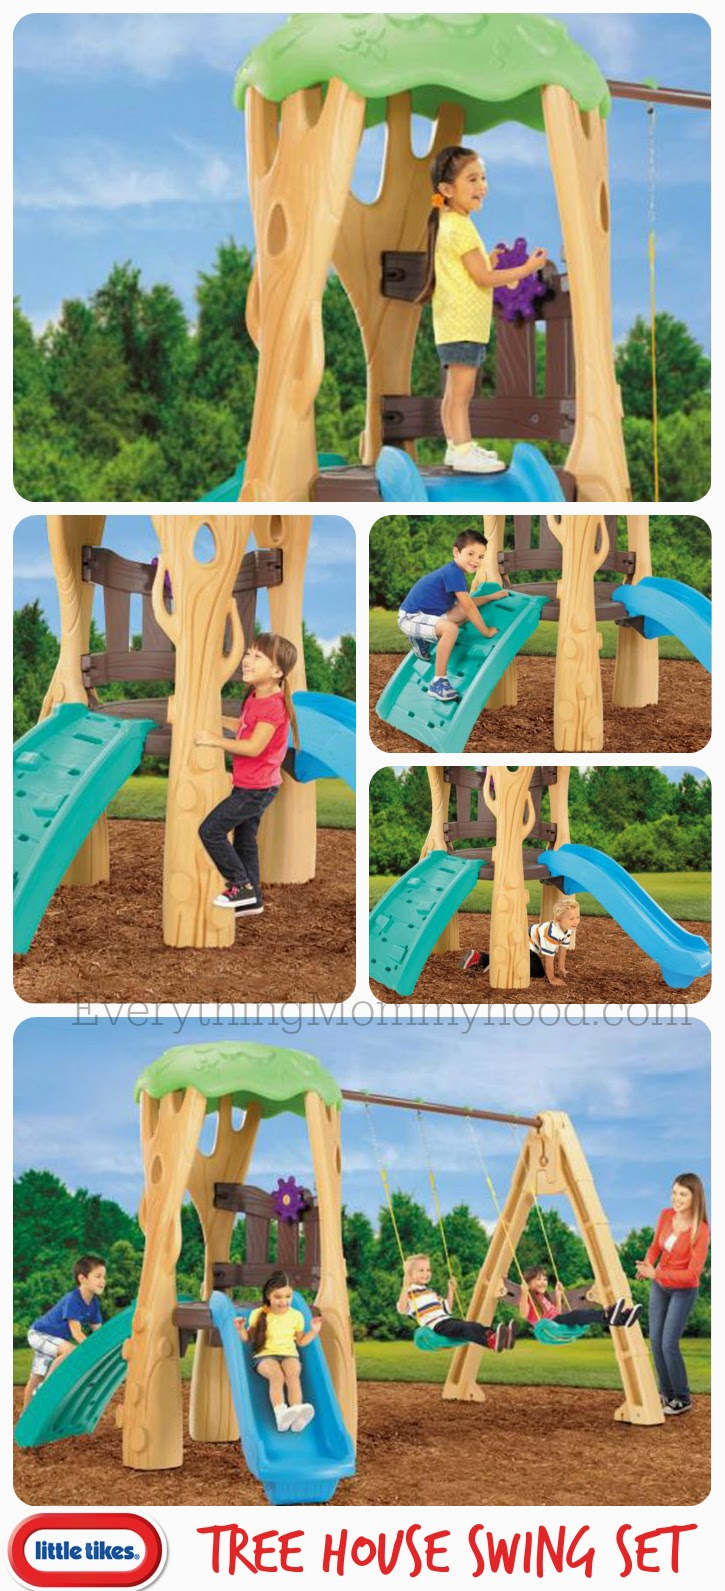 Little Tikes Tree House Swing Set Giveaway Event